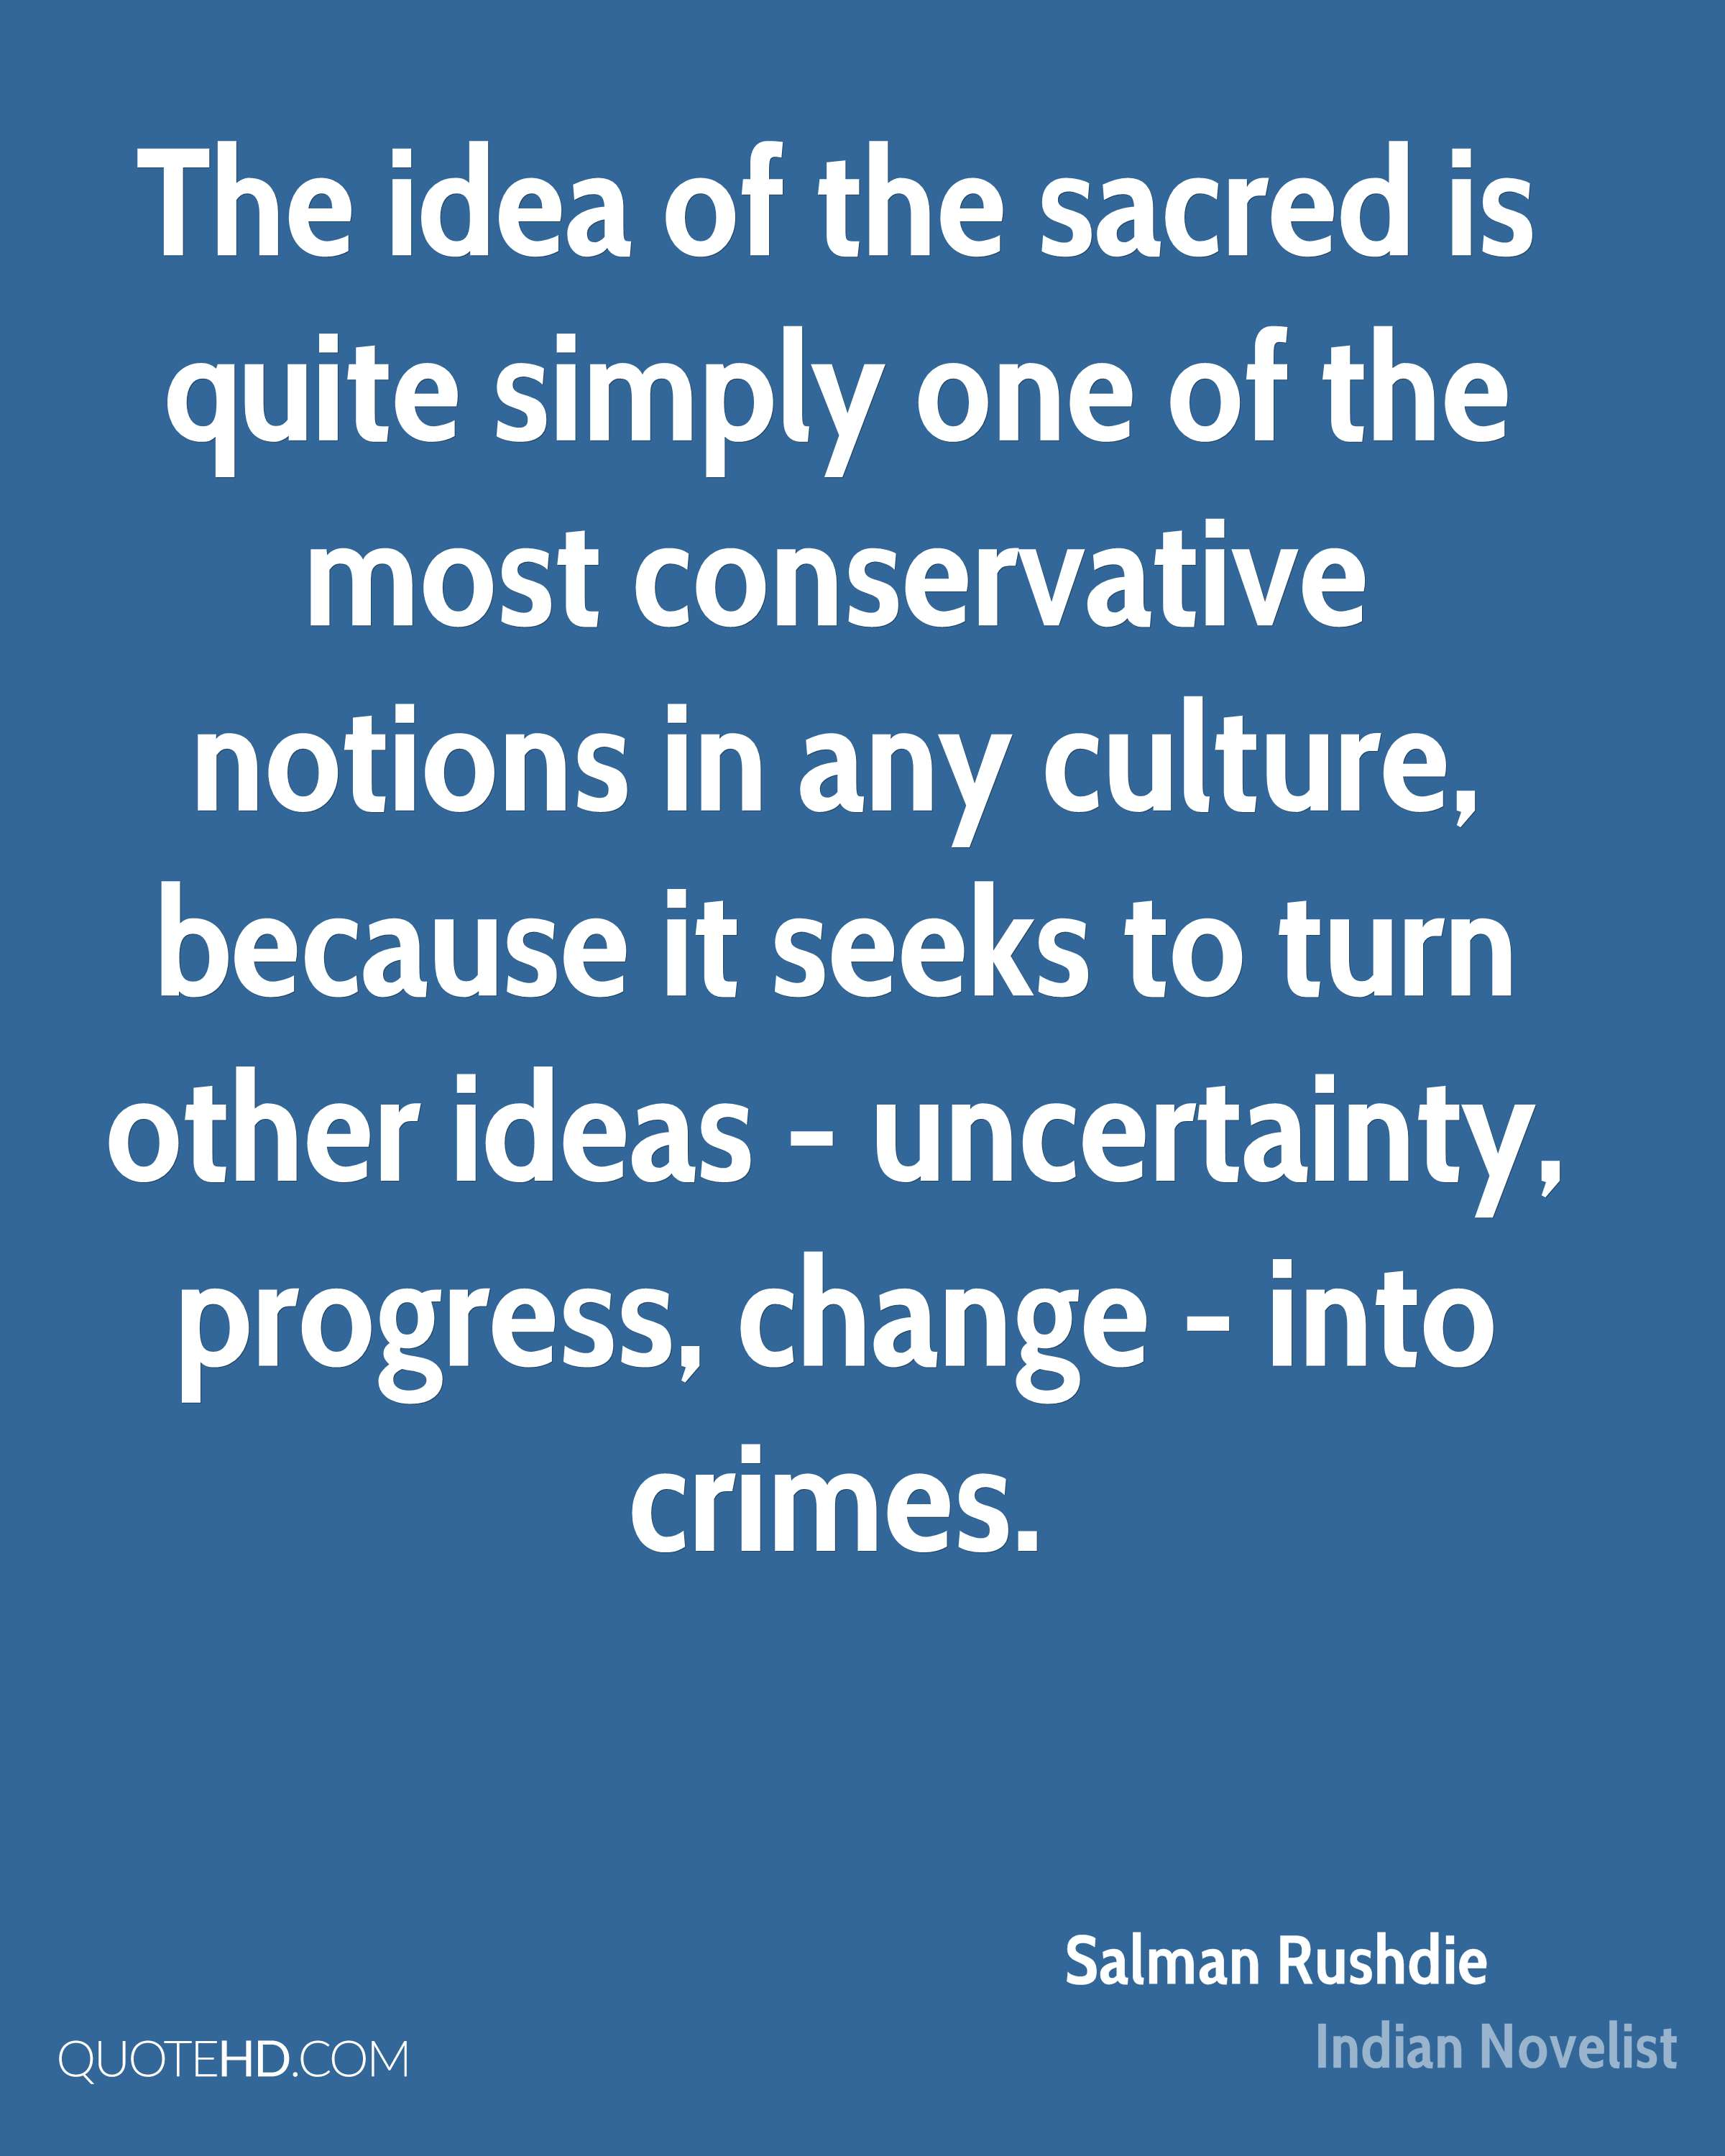 The idea of the sacred is quite simply one of the most conservative notions in any culture, because it seeks to turn other ideas - uncertainty, progress, change - into crimes.